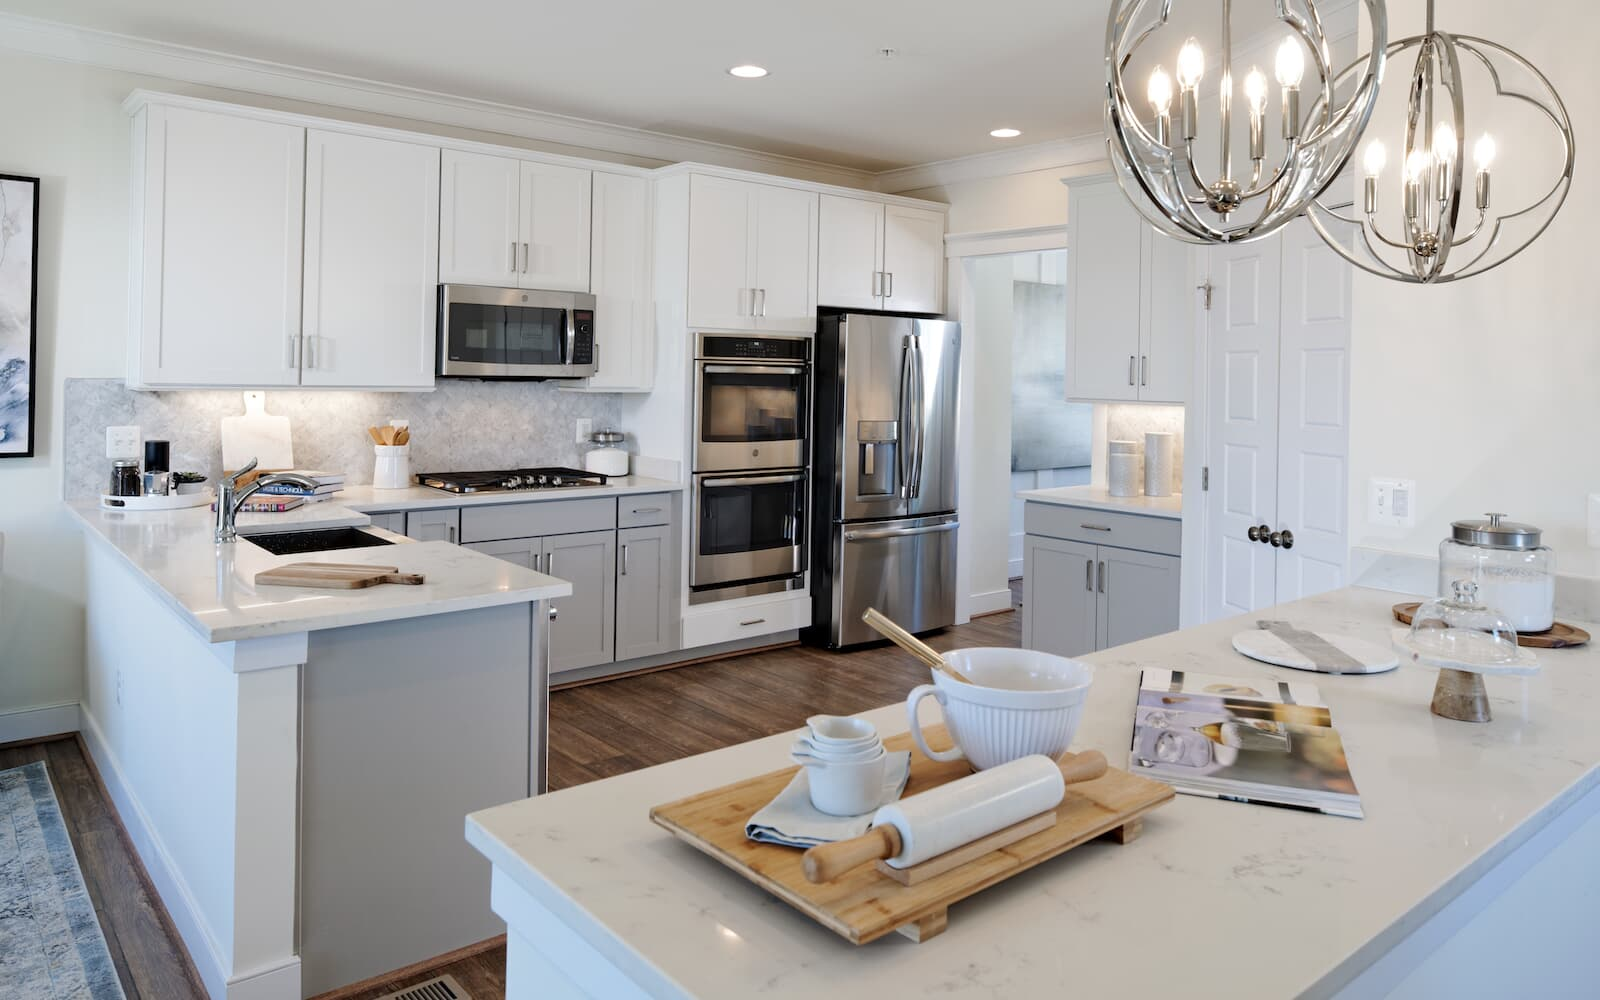 AuroraII-kitchen-townhomes-north-potomac-md-travilah-station-brookfield-residential